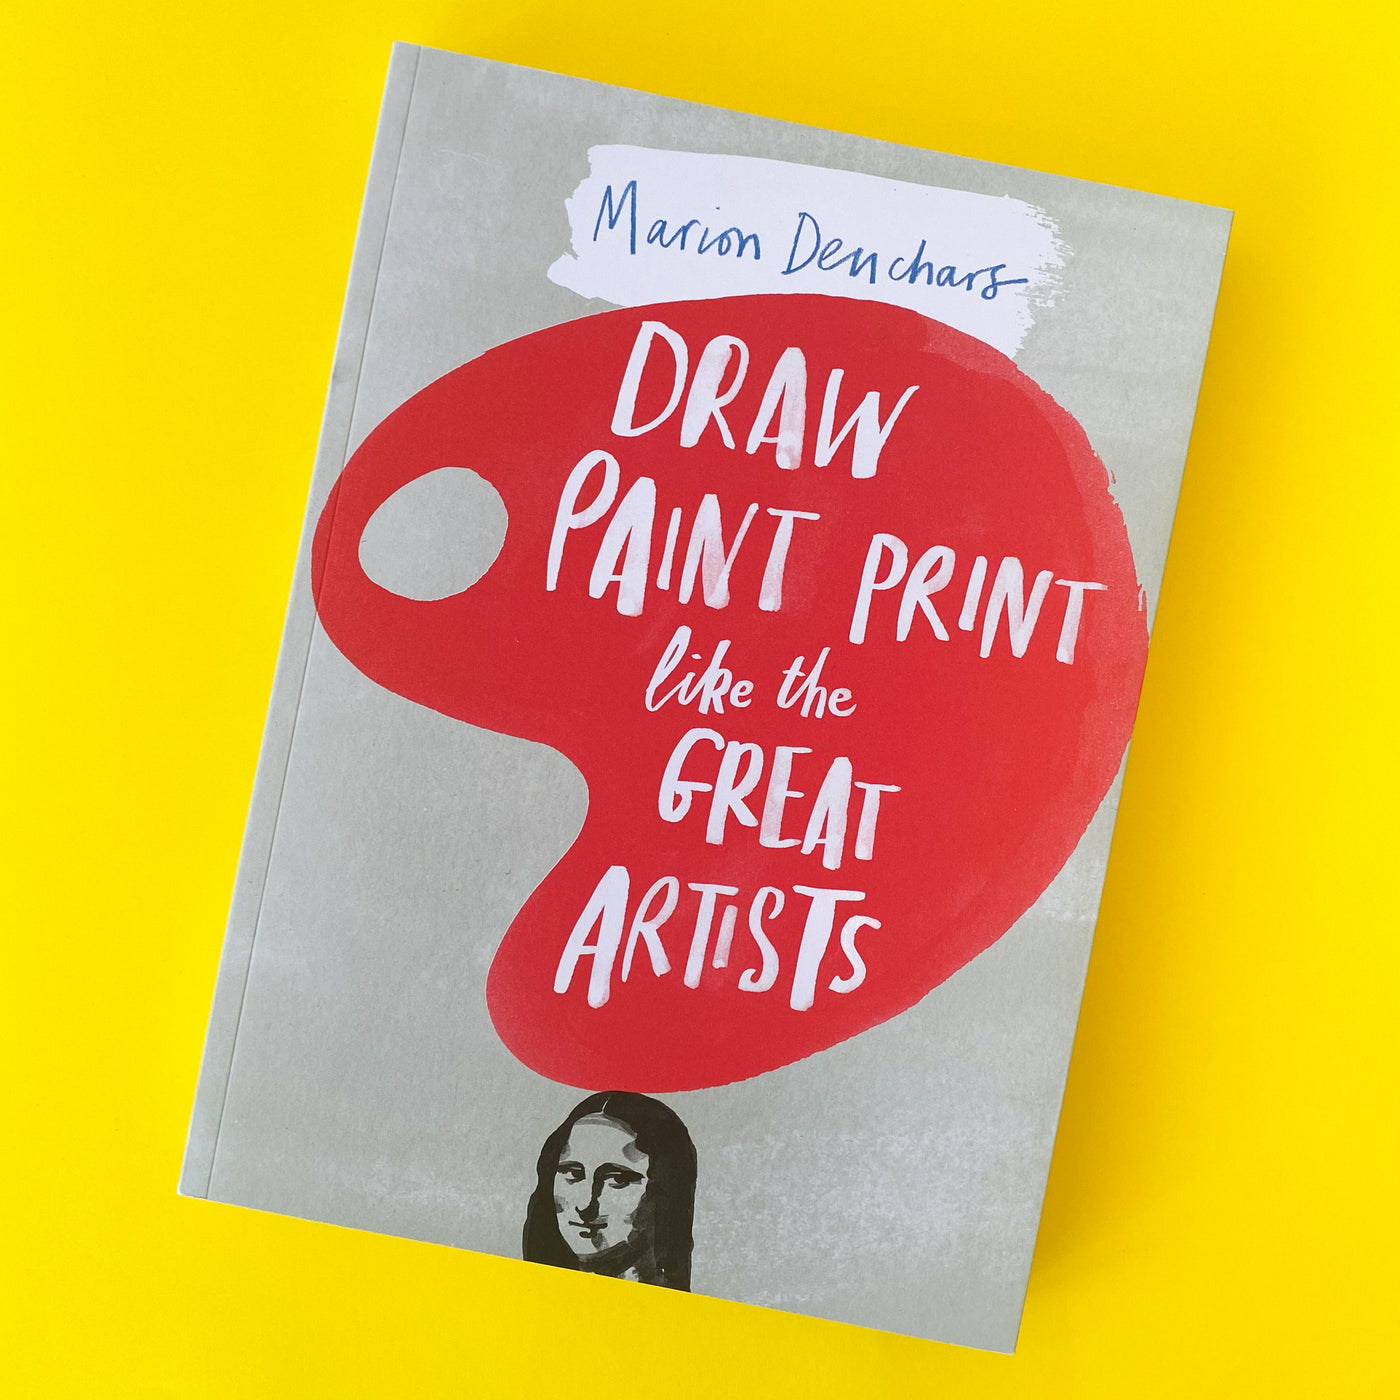 Draw, Paint and Print Like the Great Artists by Marion Deuchars